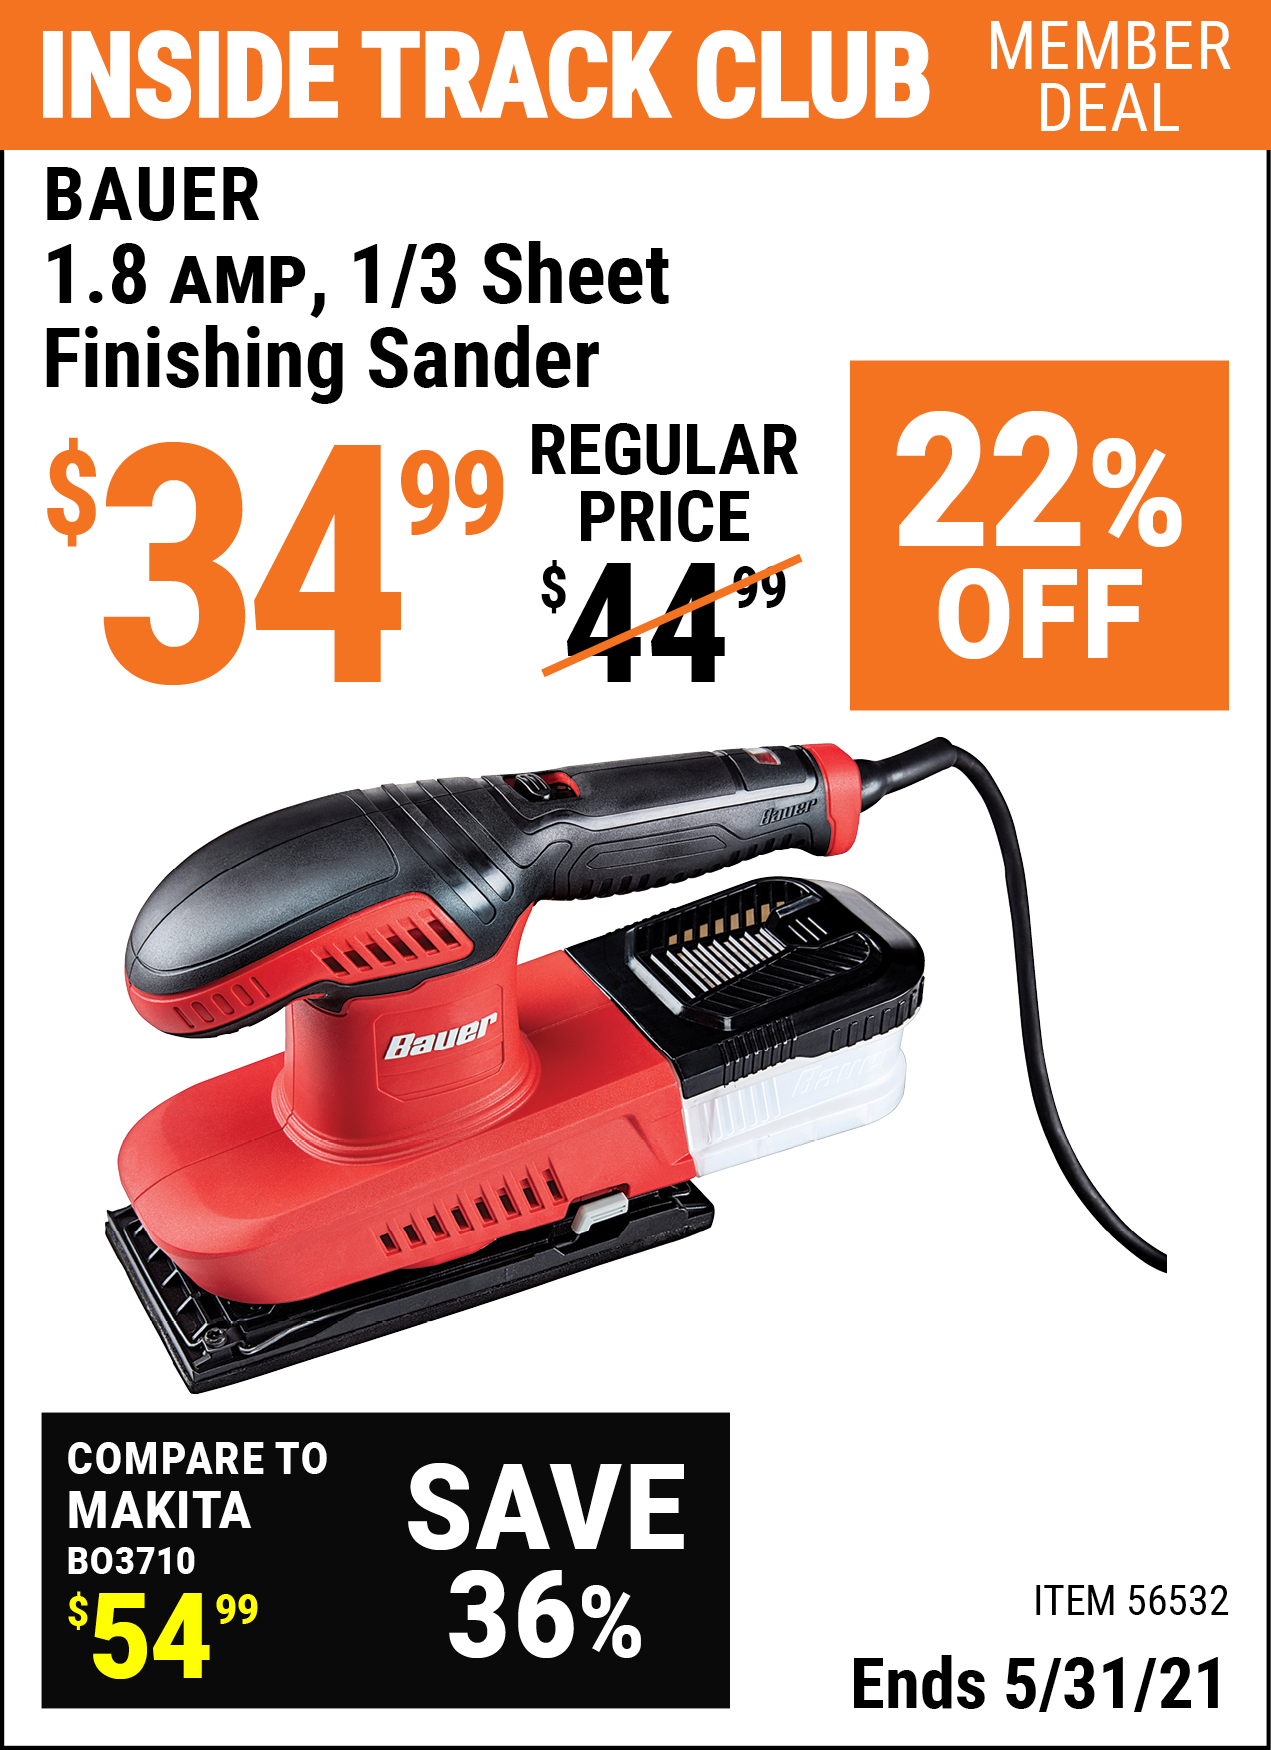 Inside Track Club members can buy the BAUER 1.8 Amp 1/3 Sheet Heavy Duty Finishing Sander (Item 56532) for $34.99, valid through 5/31/2021.